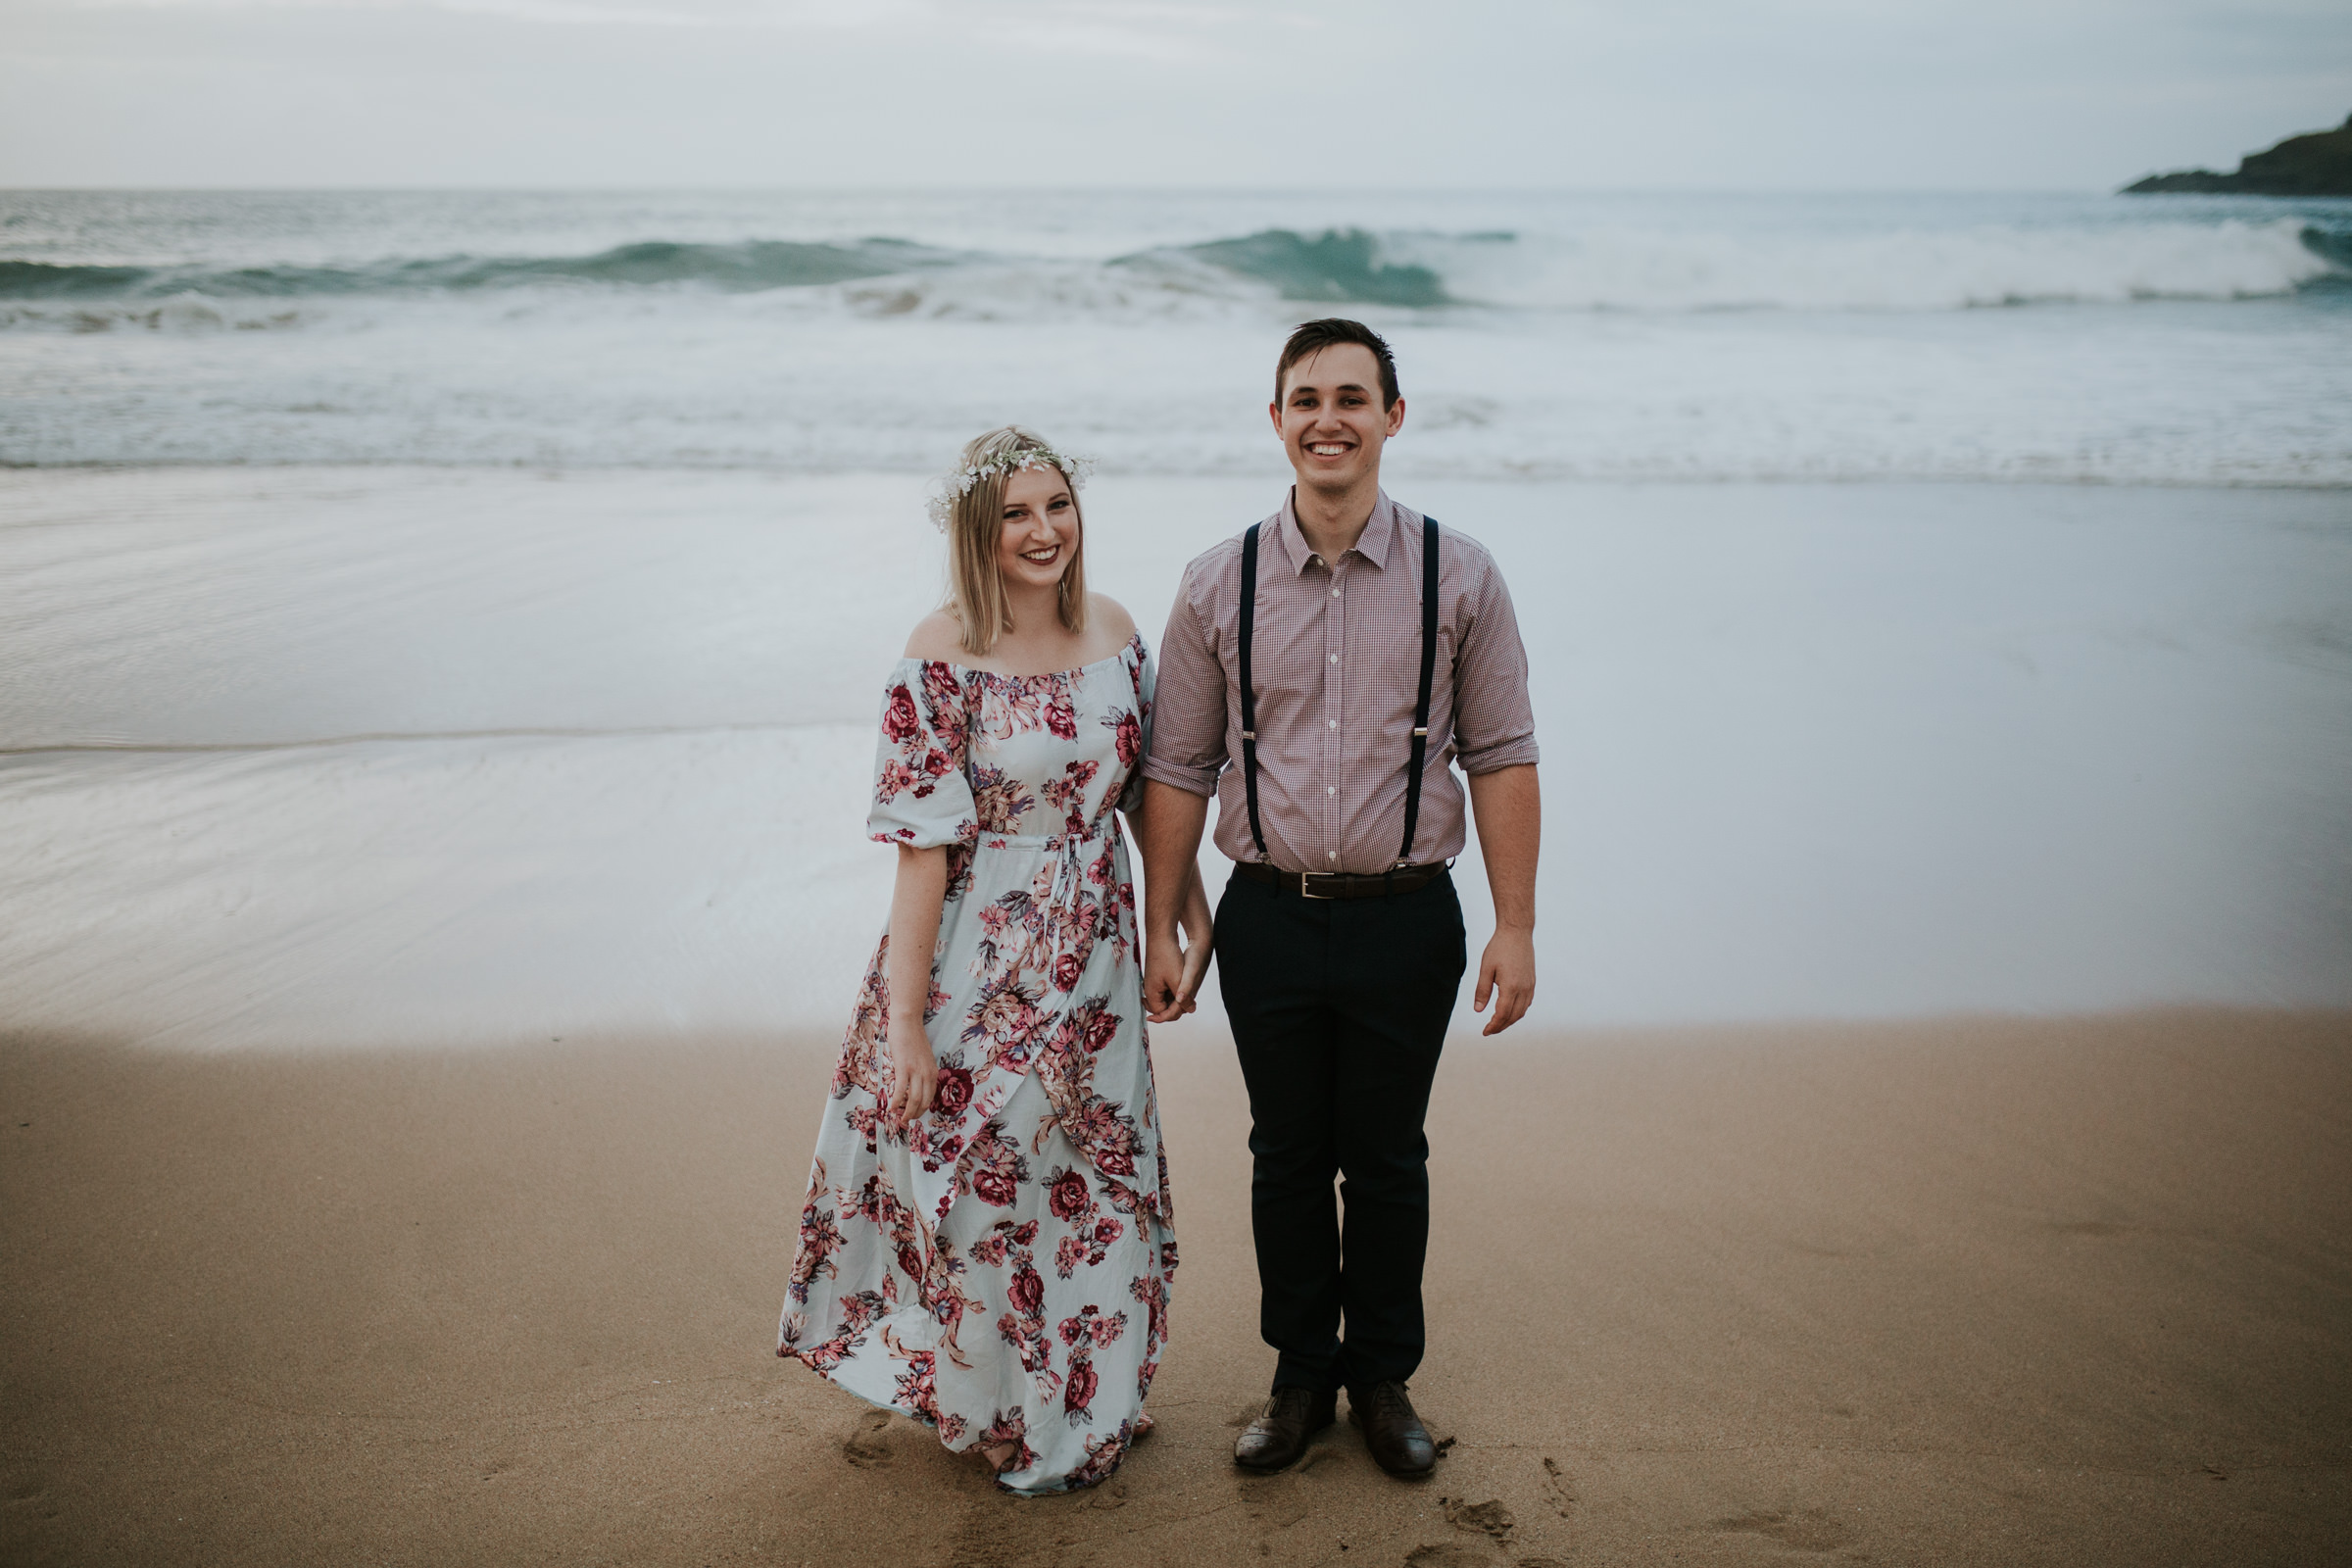 Ebony+Aj+Engagement+Kiama+Beach-2.jpg